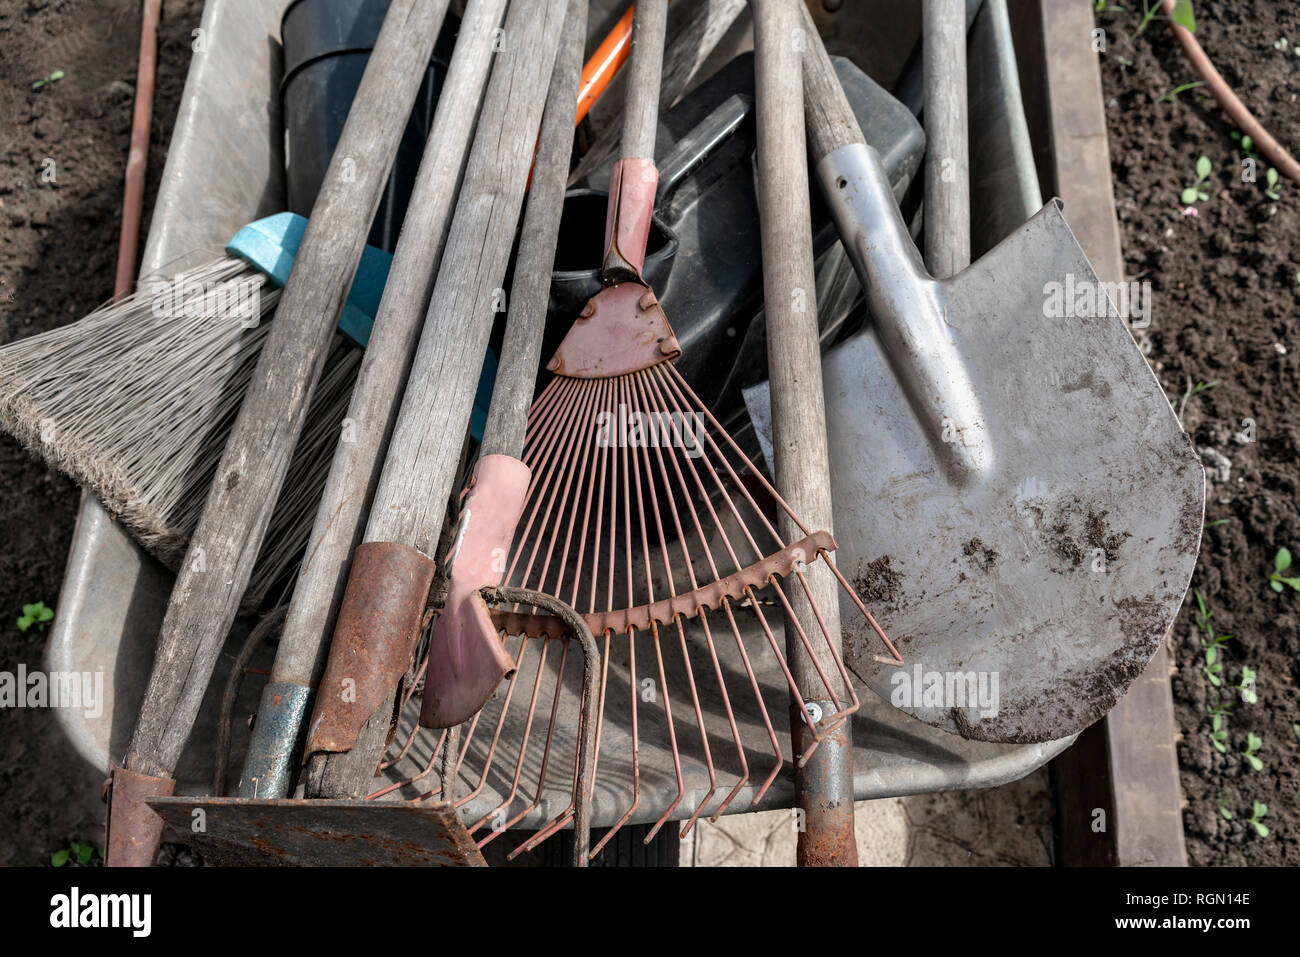 A Set Of Used Old Dirty Garden Tools A Rake Shovels Hoes In A